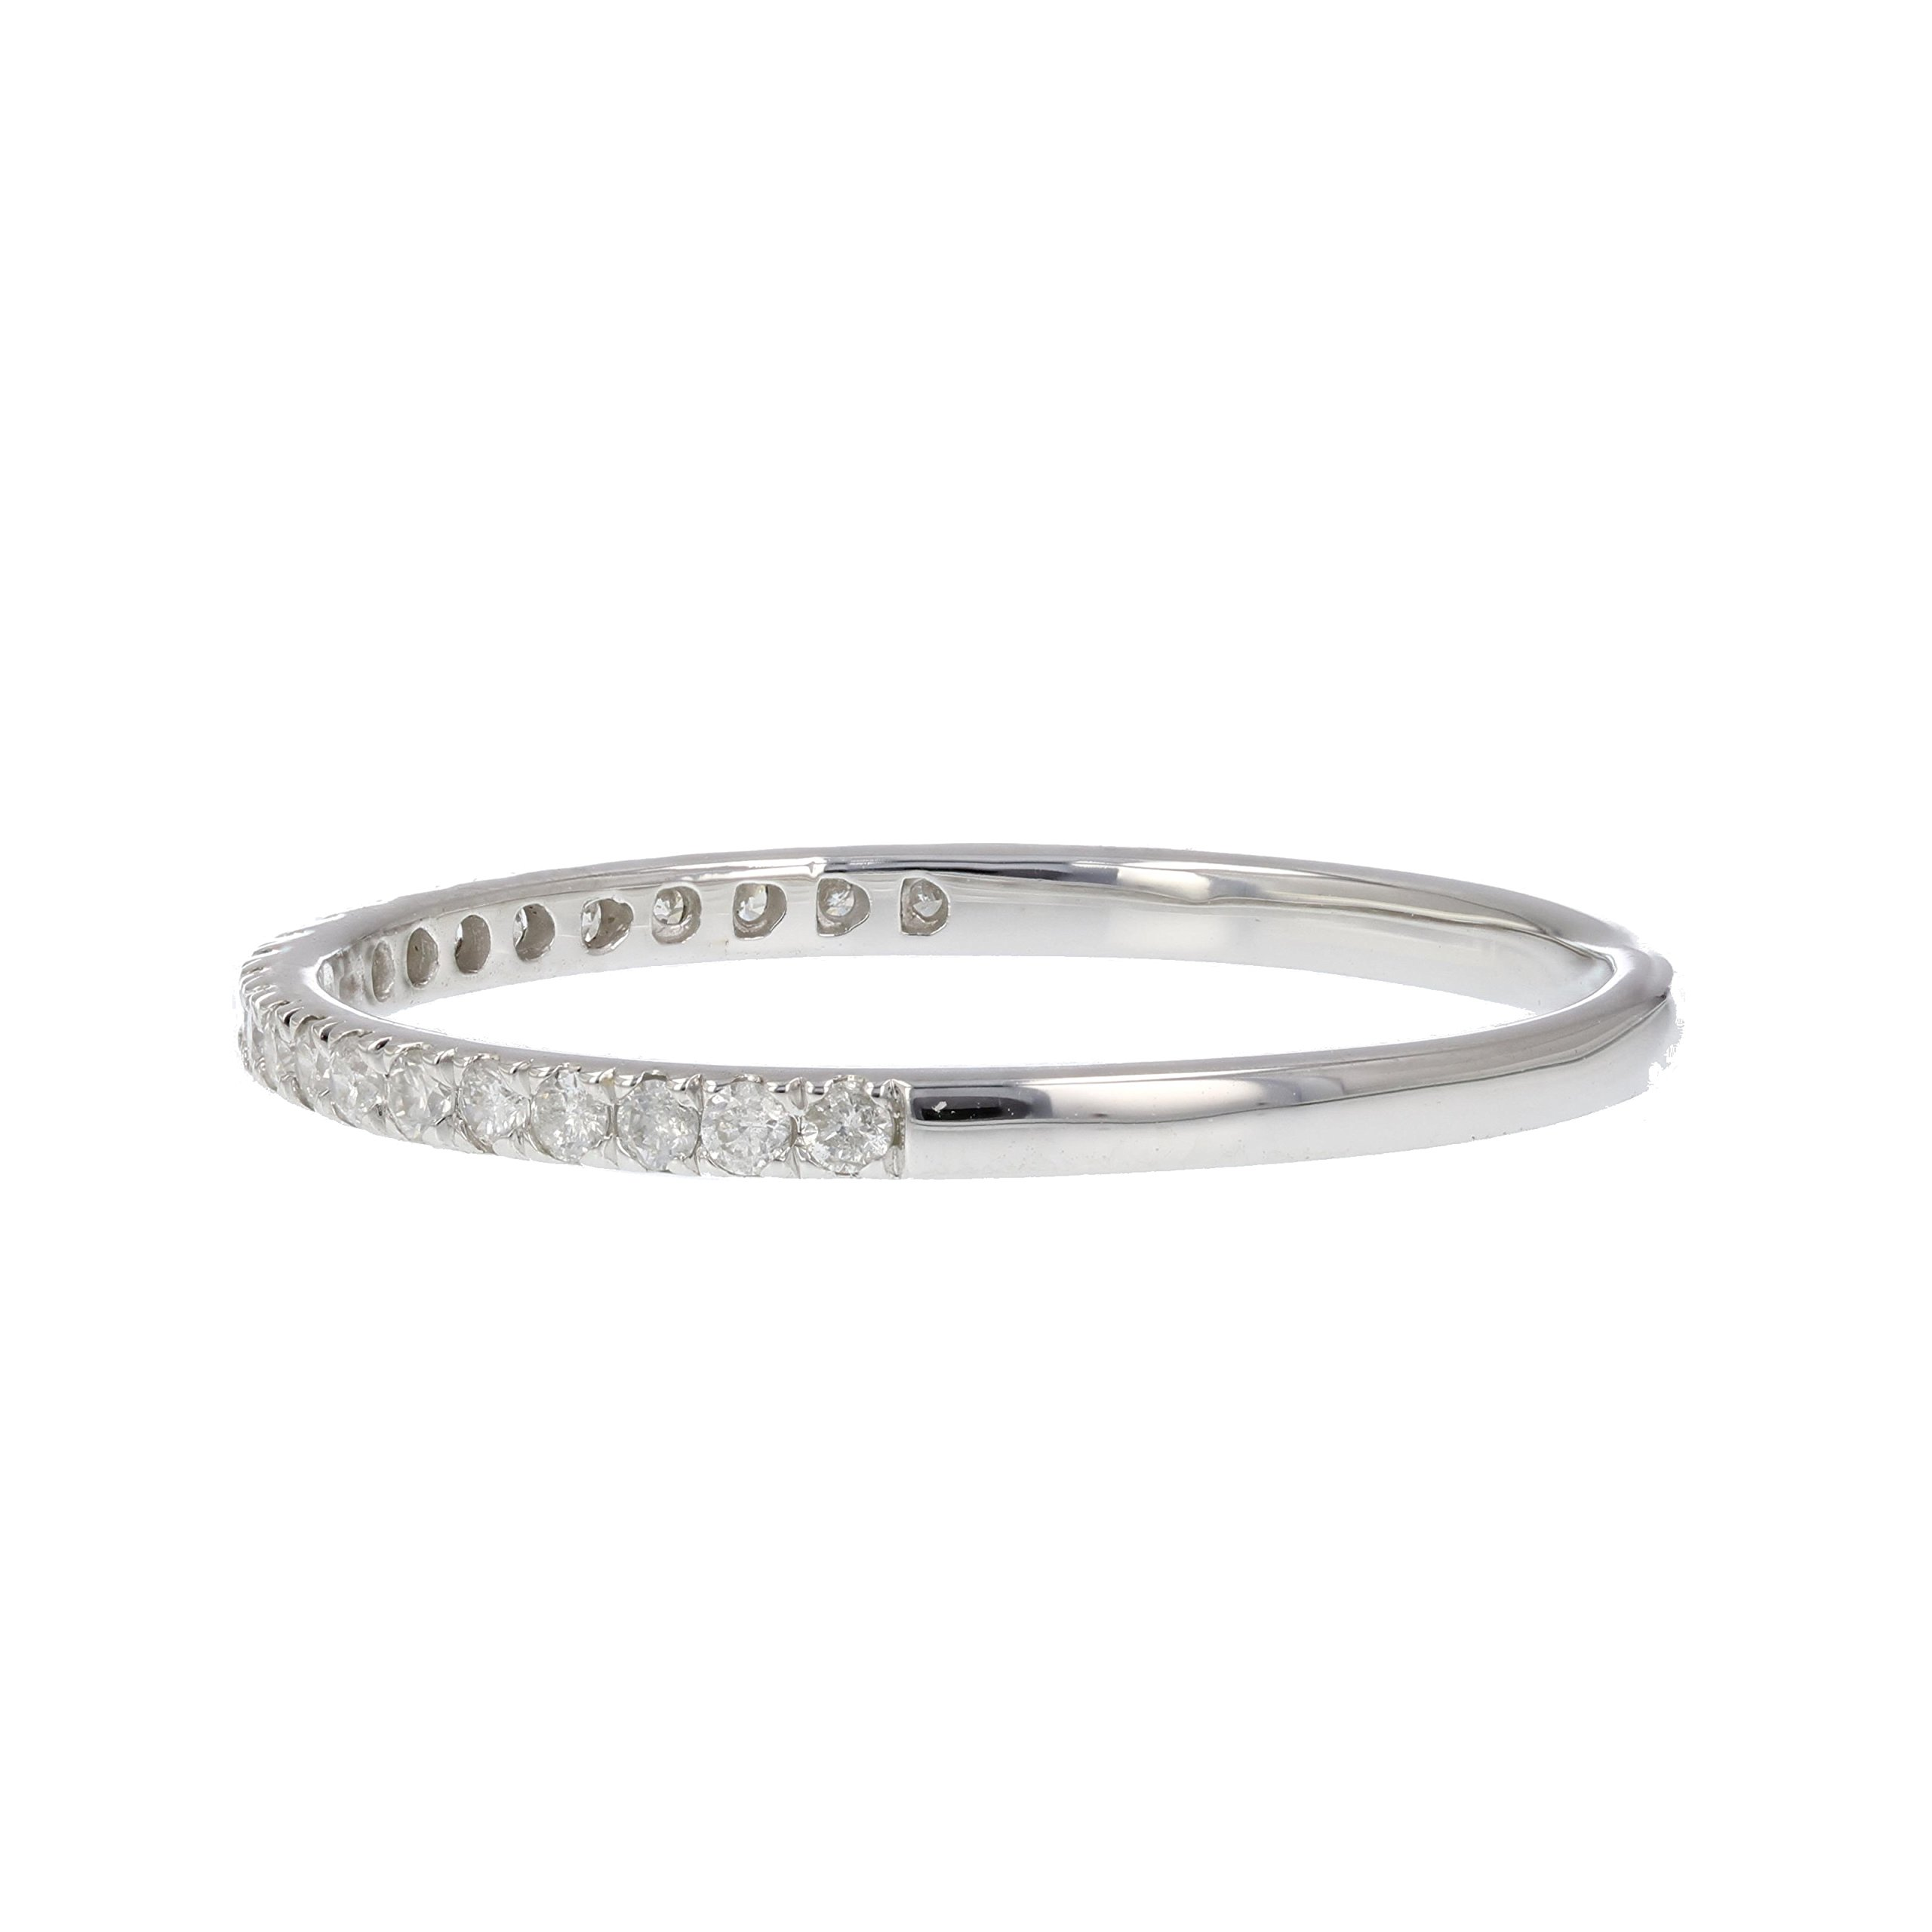 1/6 ctw Pave Diamond Wedding Band in 10K White Gold In Size 5 by Vir Jewels (Image #2)